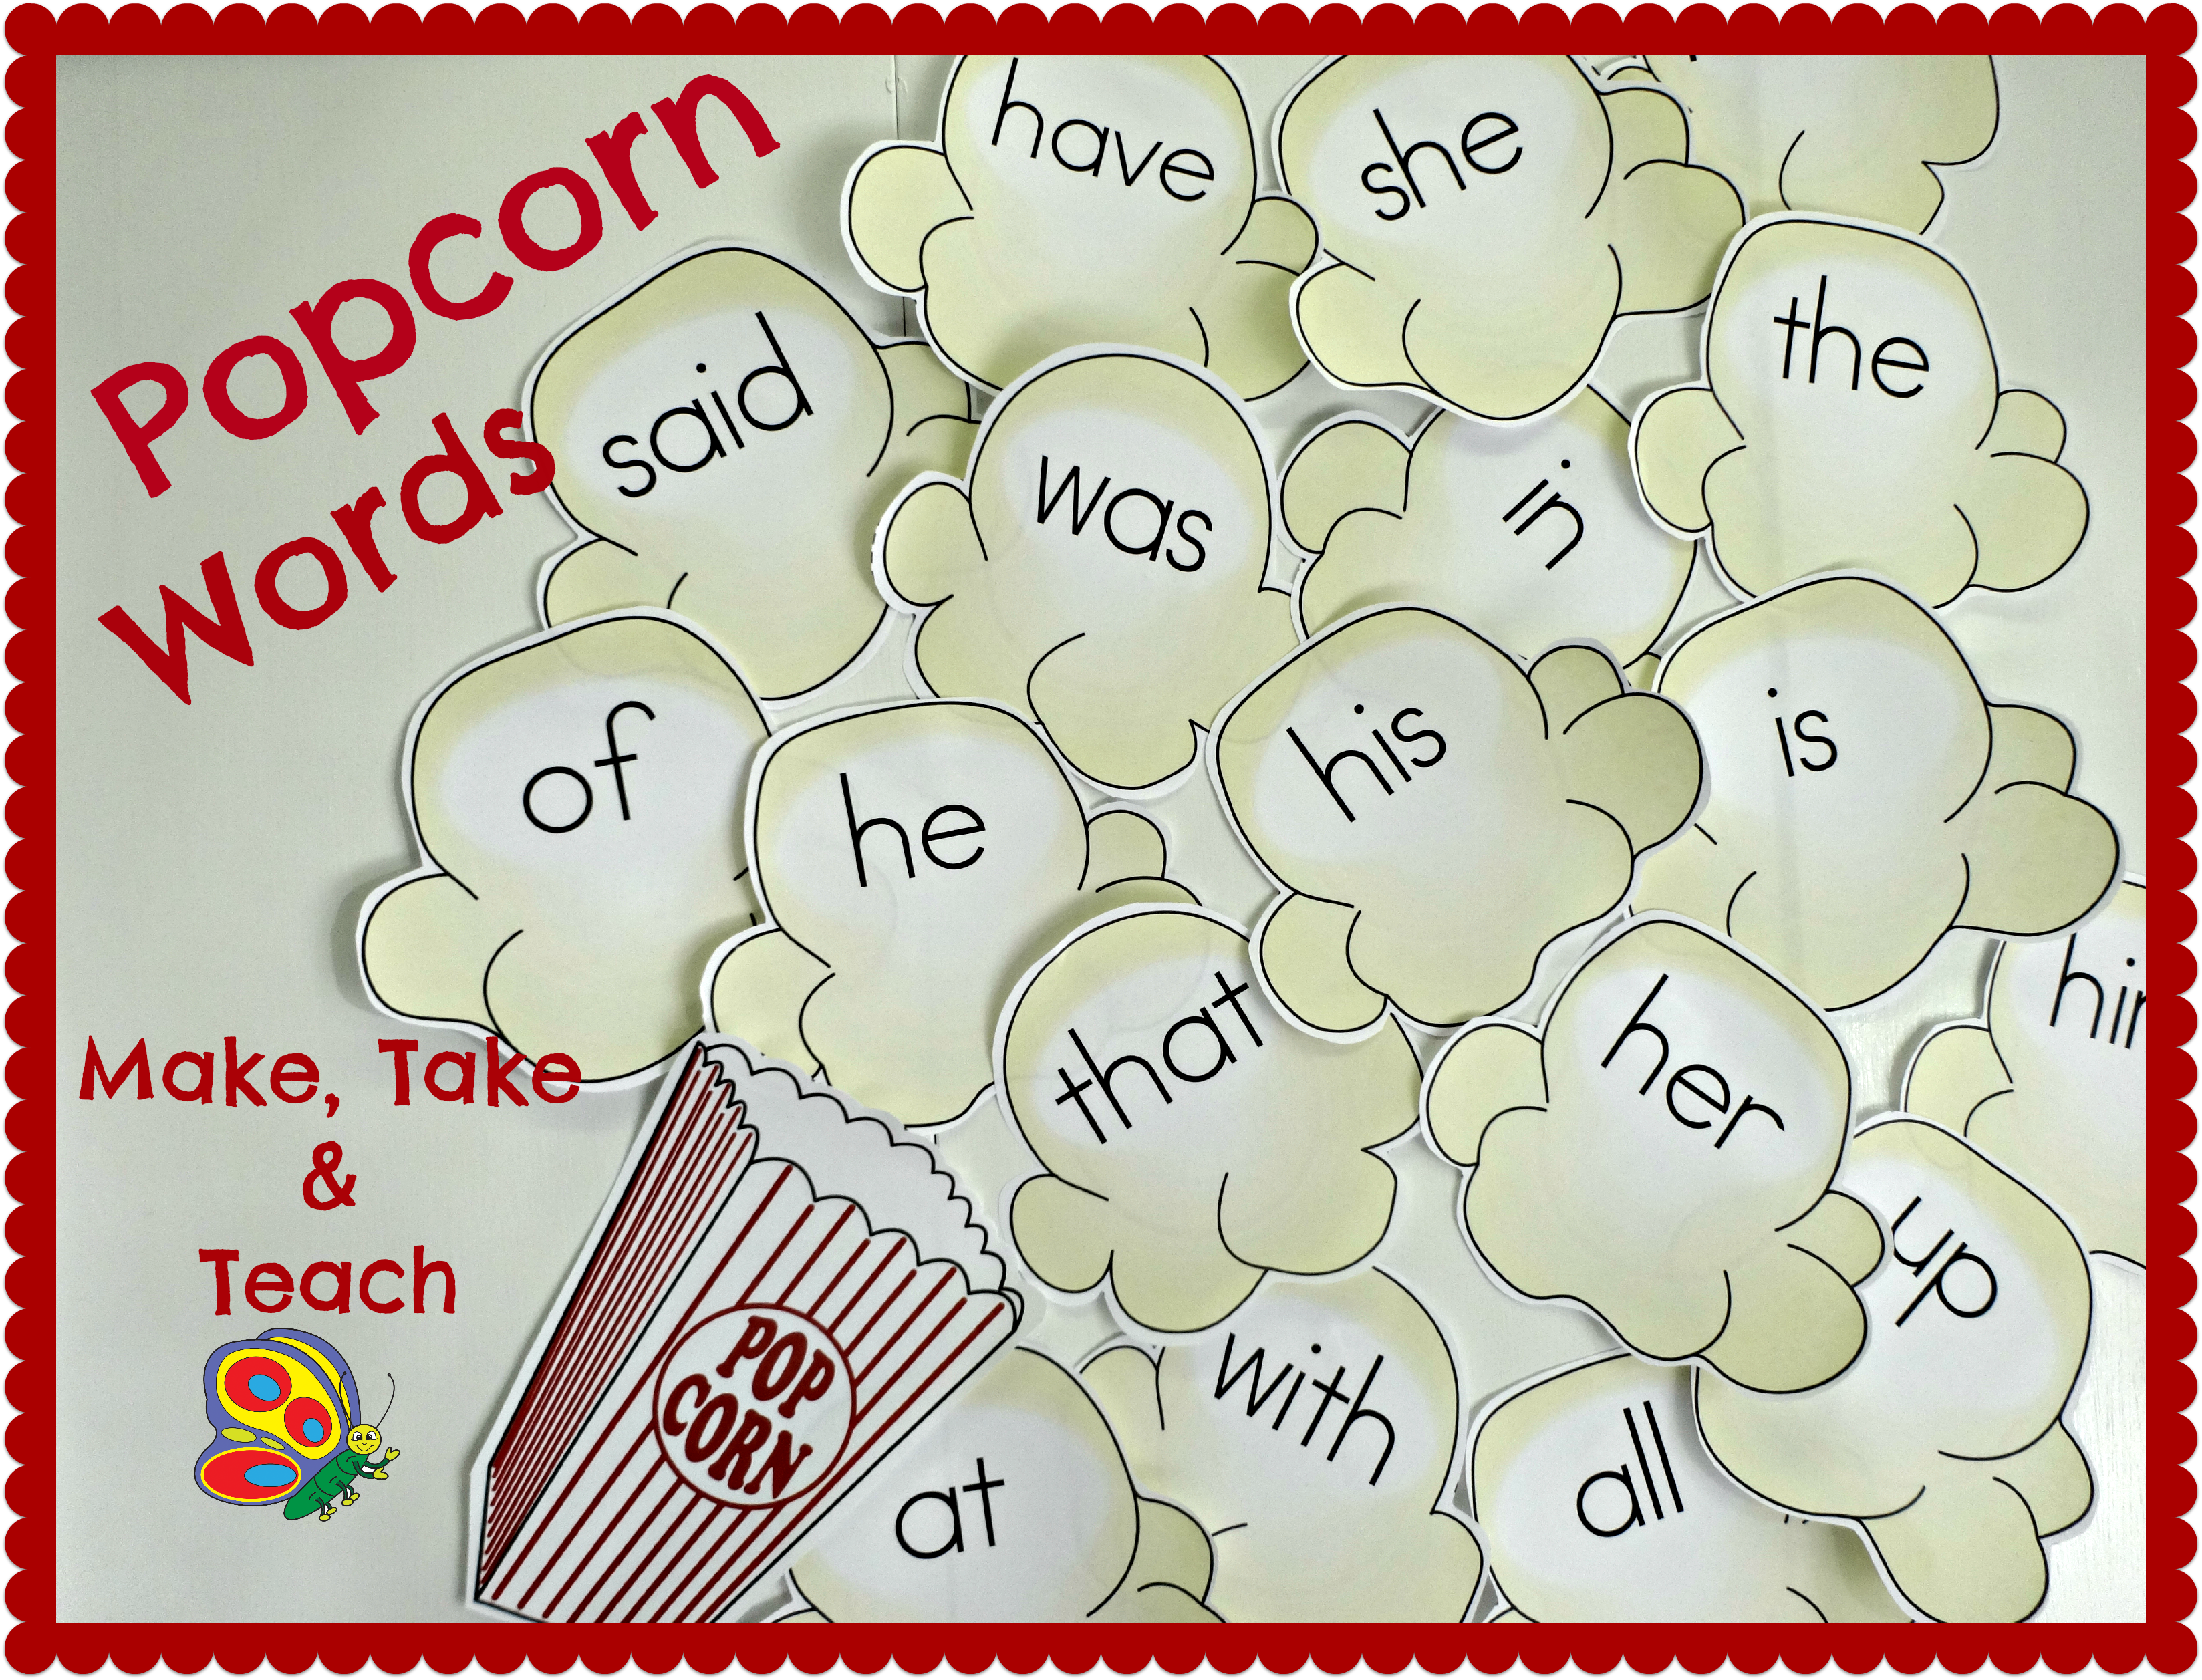 Popcorn Words - Make Take & Teach